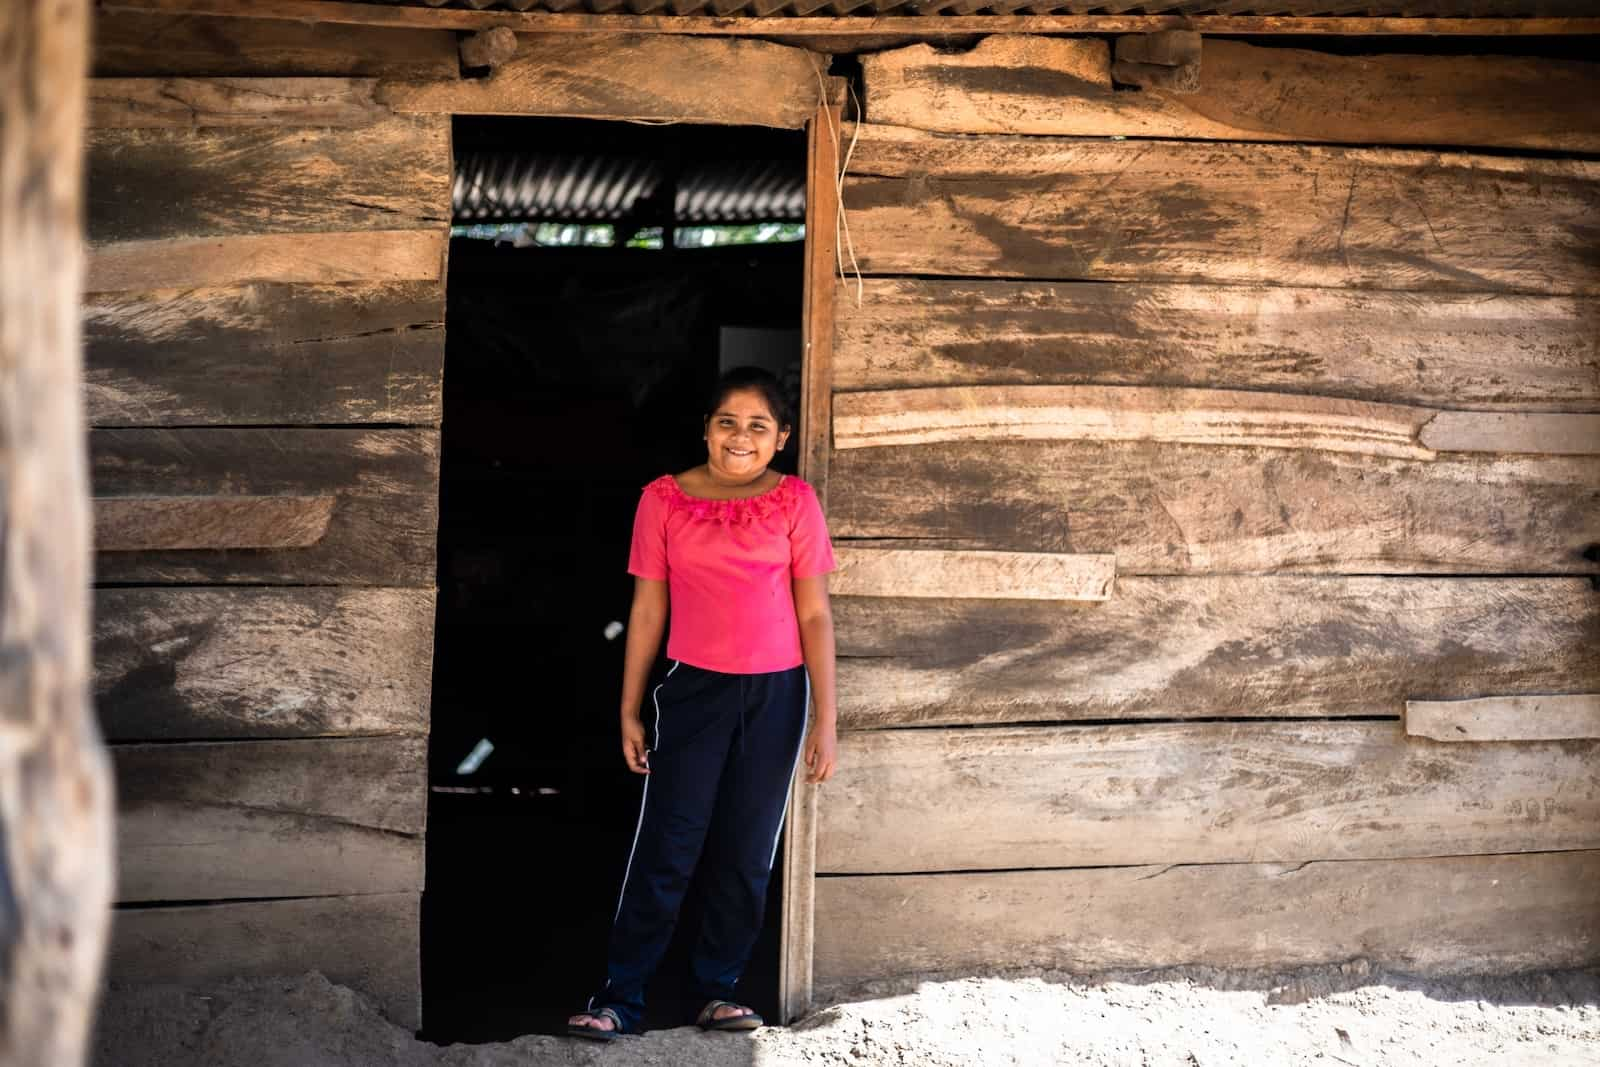 A girl in a pink shirt and jeans stands in the doorway of a wooden home in Central America.